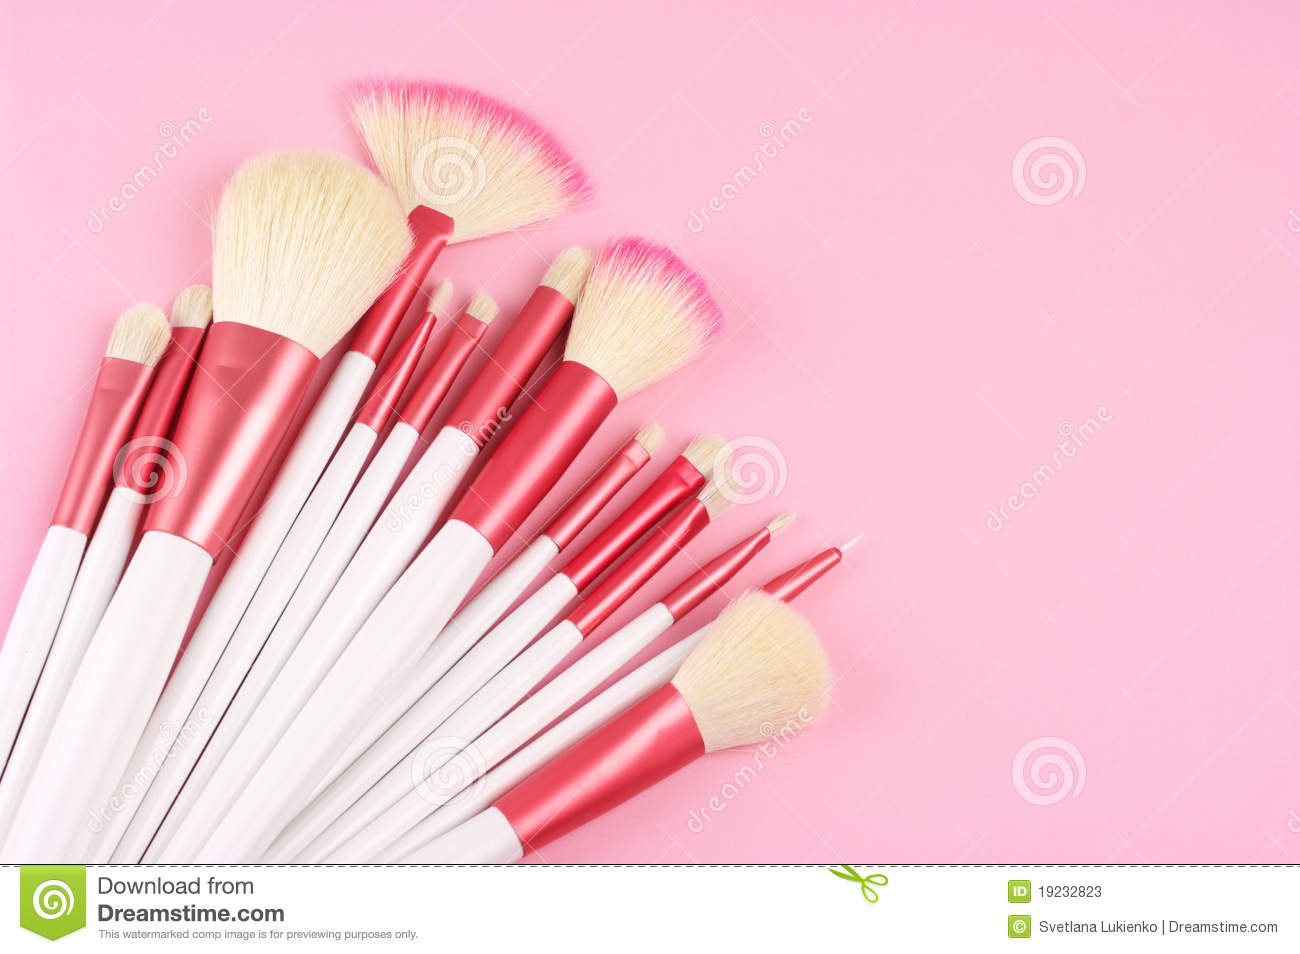 Makeup Products Photography Tumblr Download